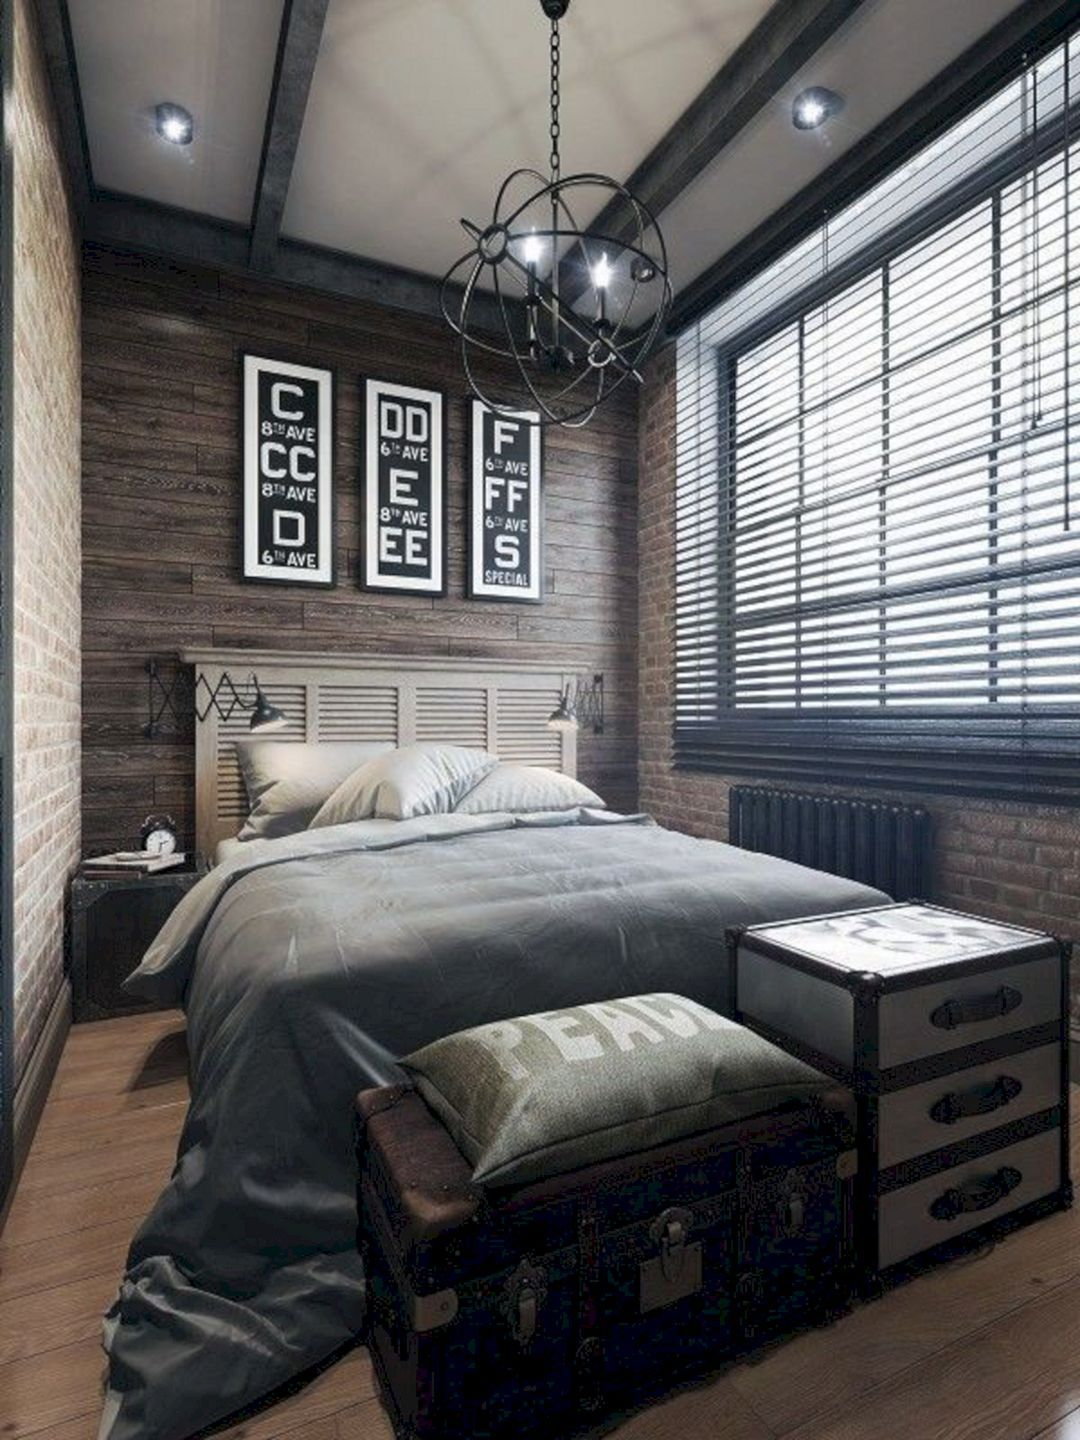 Unique bedroom interior design awesome industrial bedroom design ideas for unique bedroom style